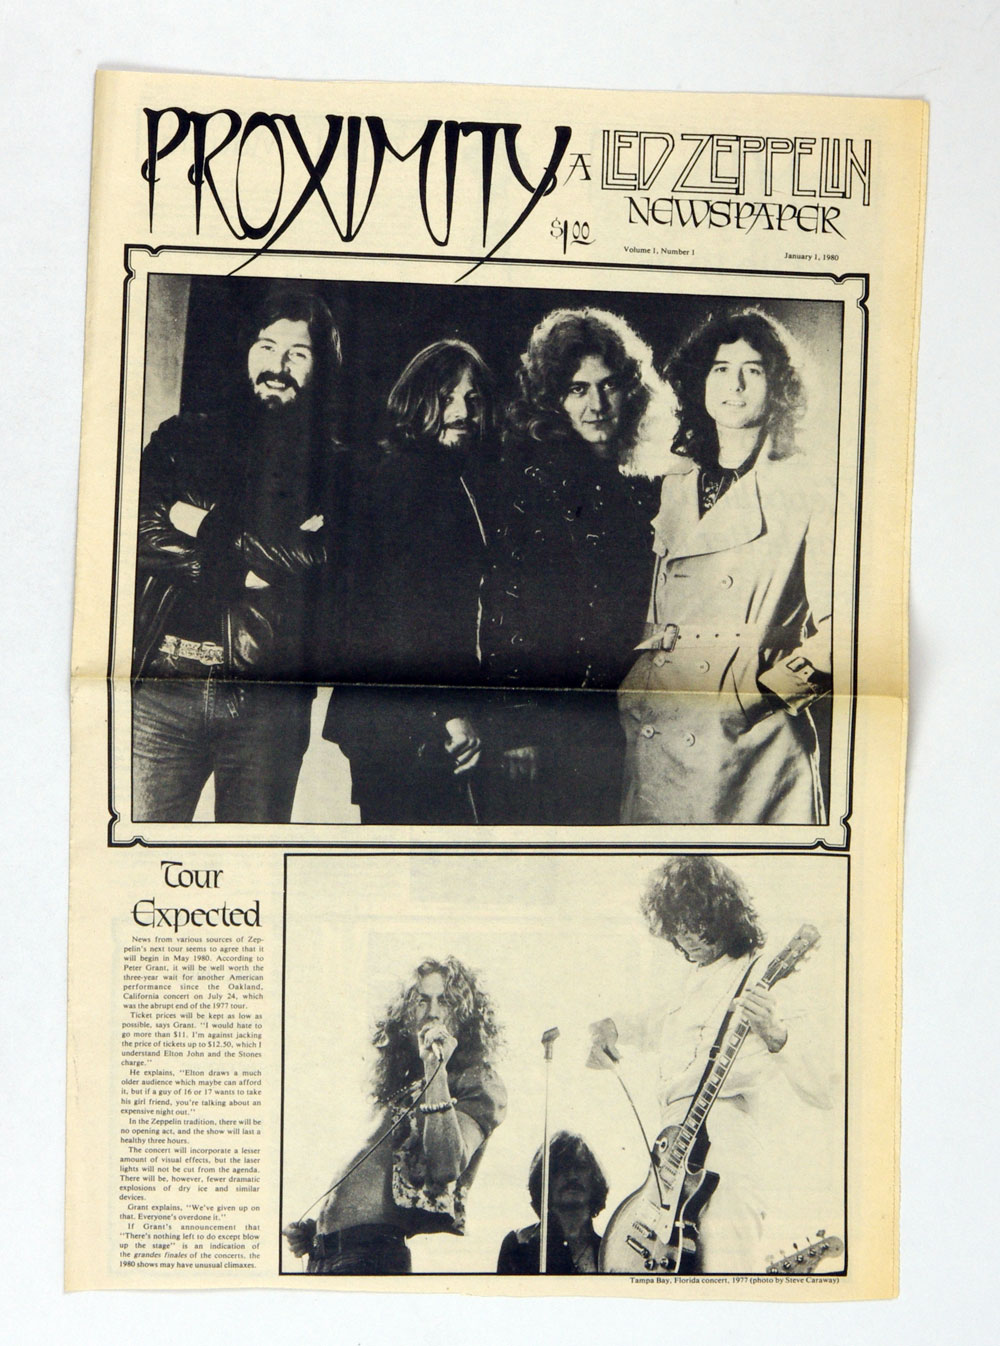 Led Zeppelin Fanzine Proximity Vol. 1 thru Vol 8 Complete Set 1980 thru 1981